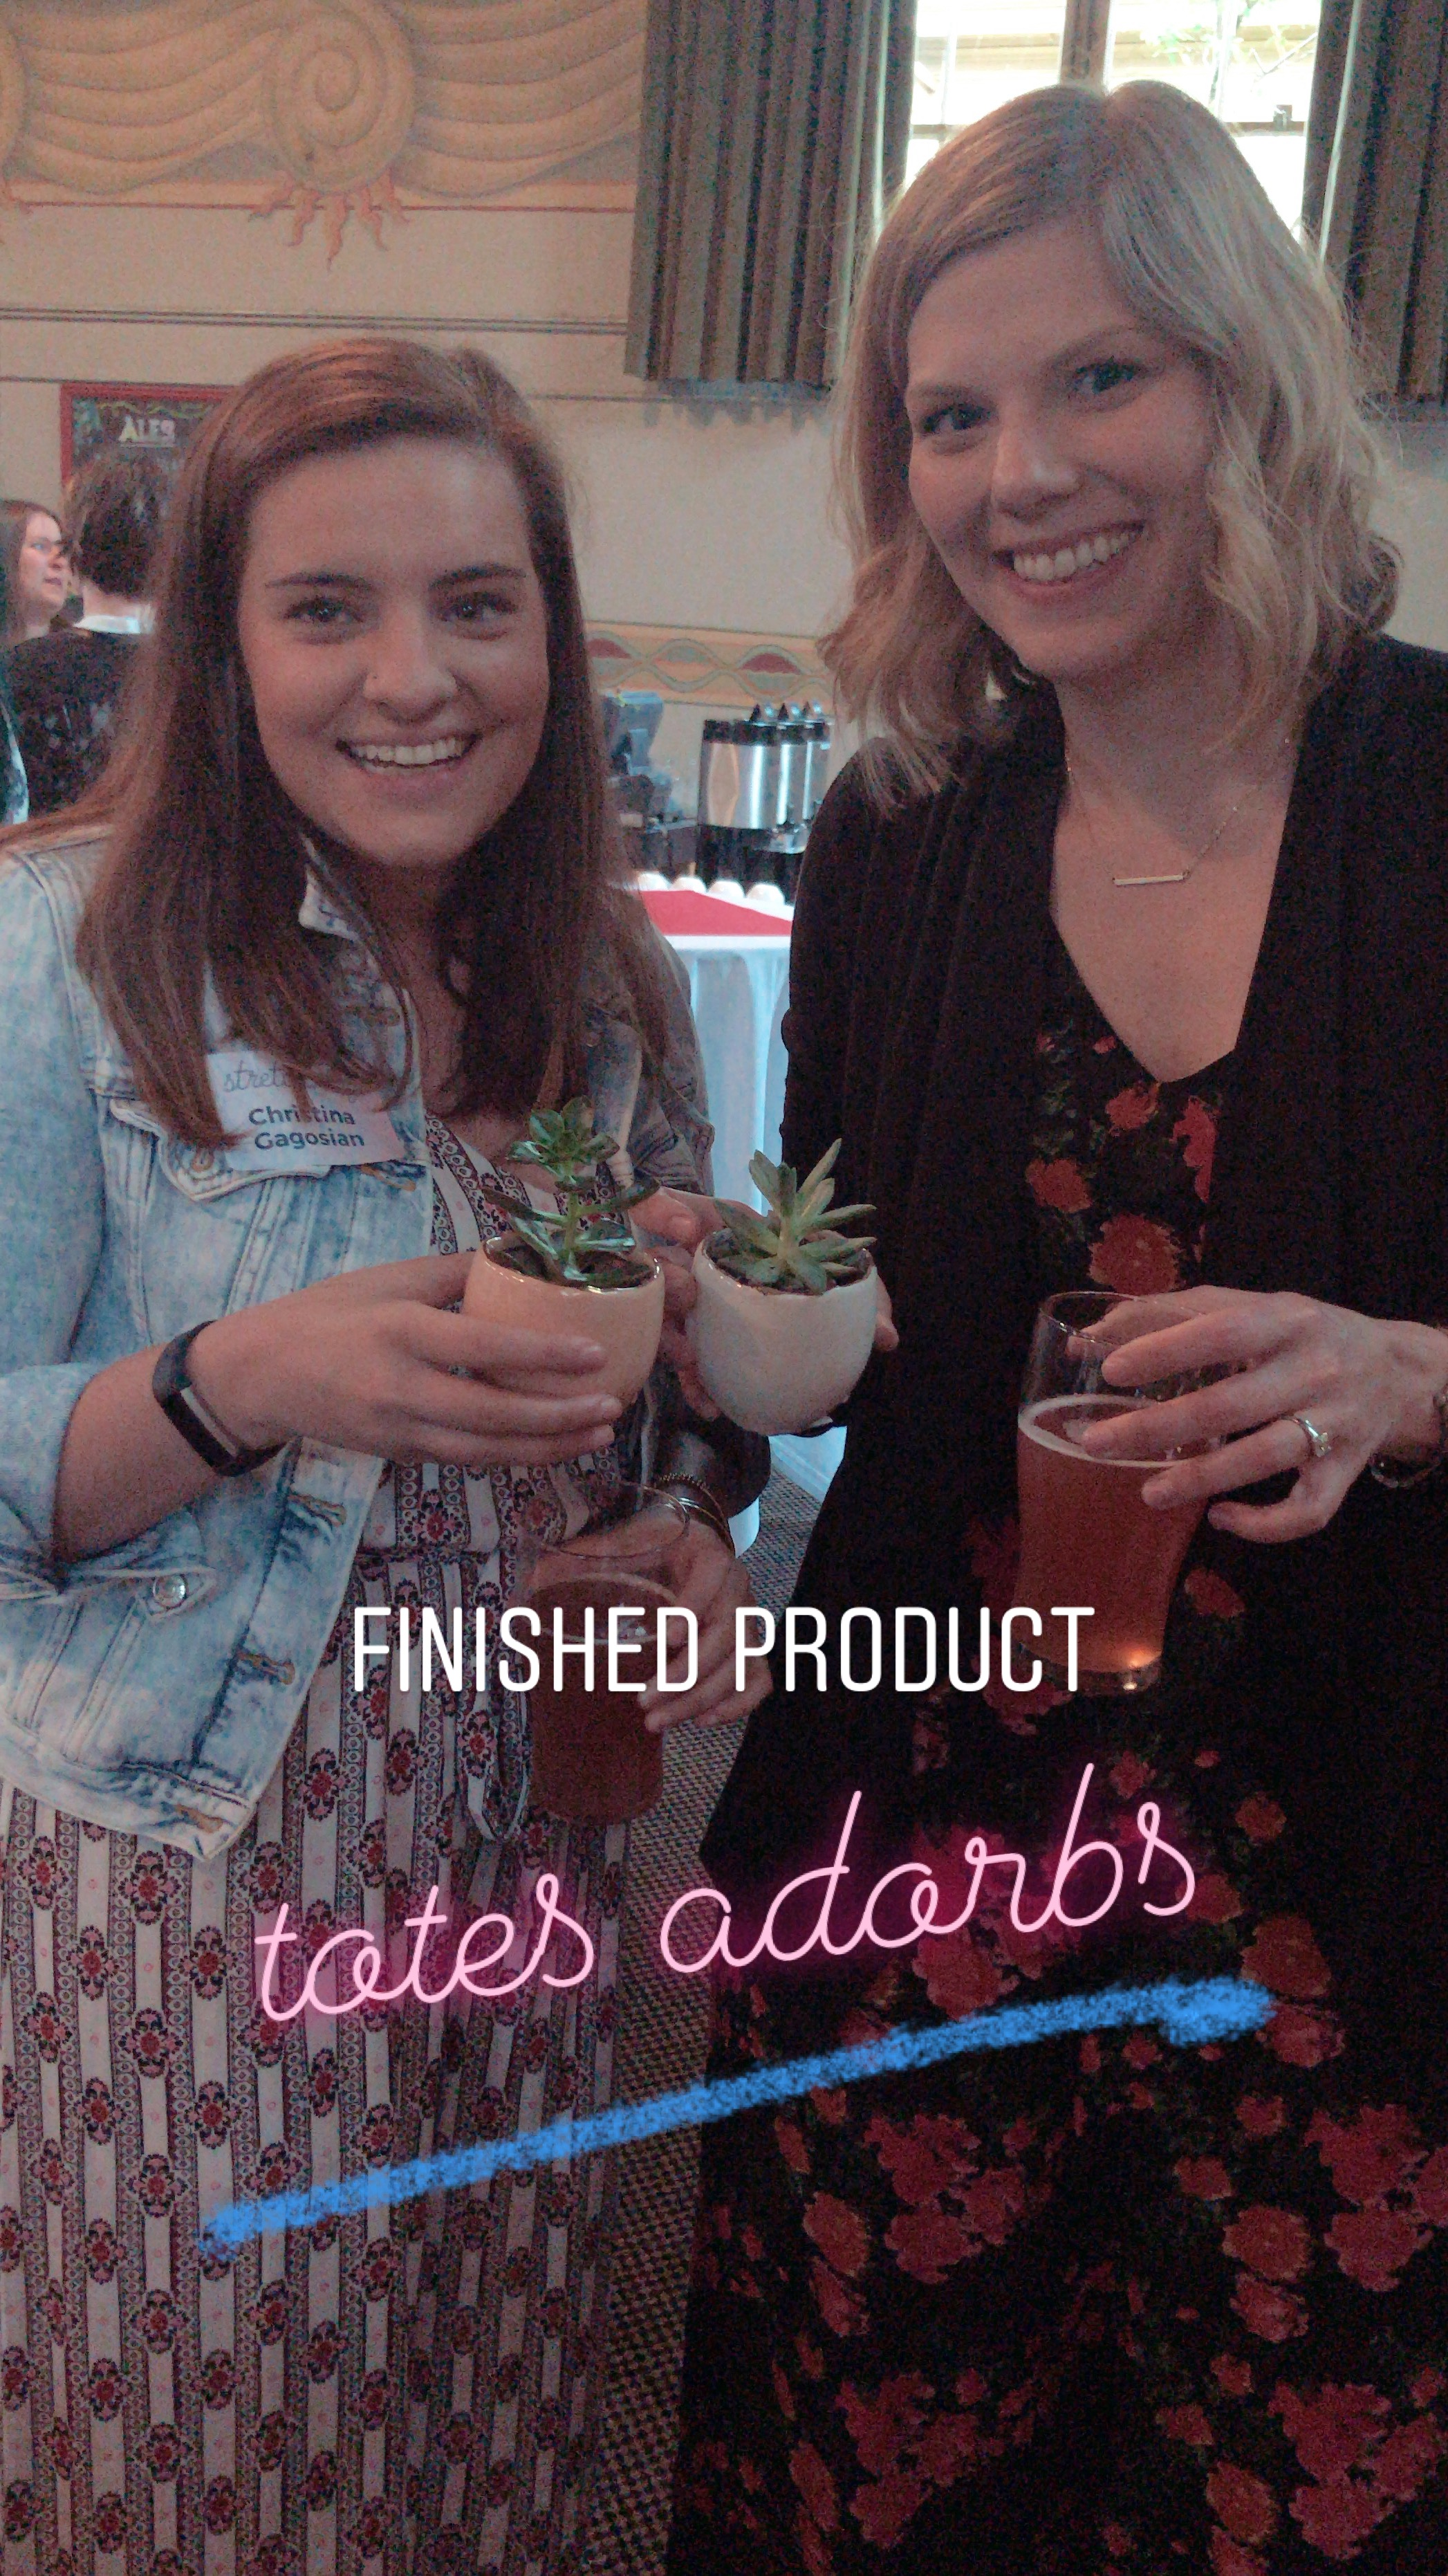 EOY 2018 -  Christina & Sarah finished